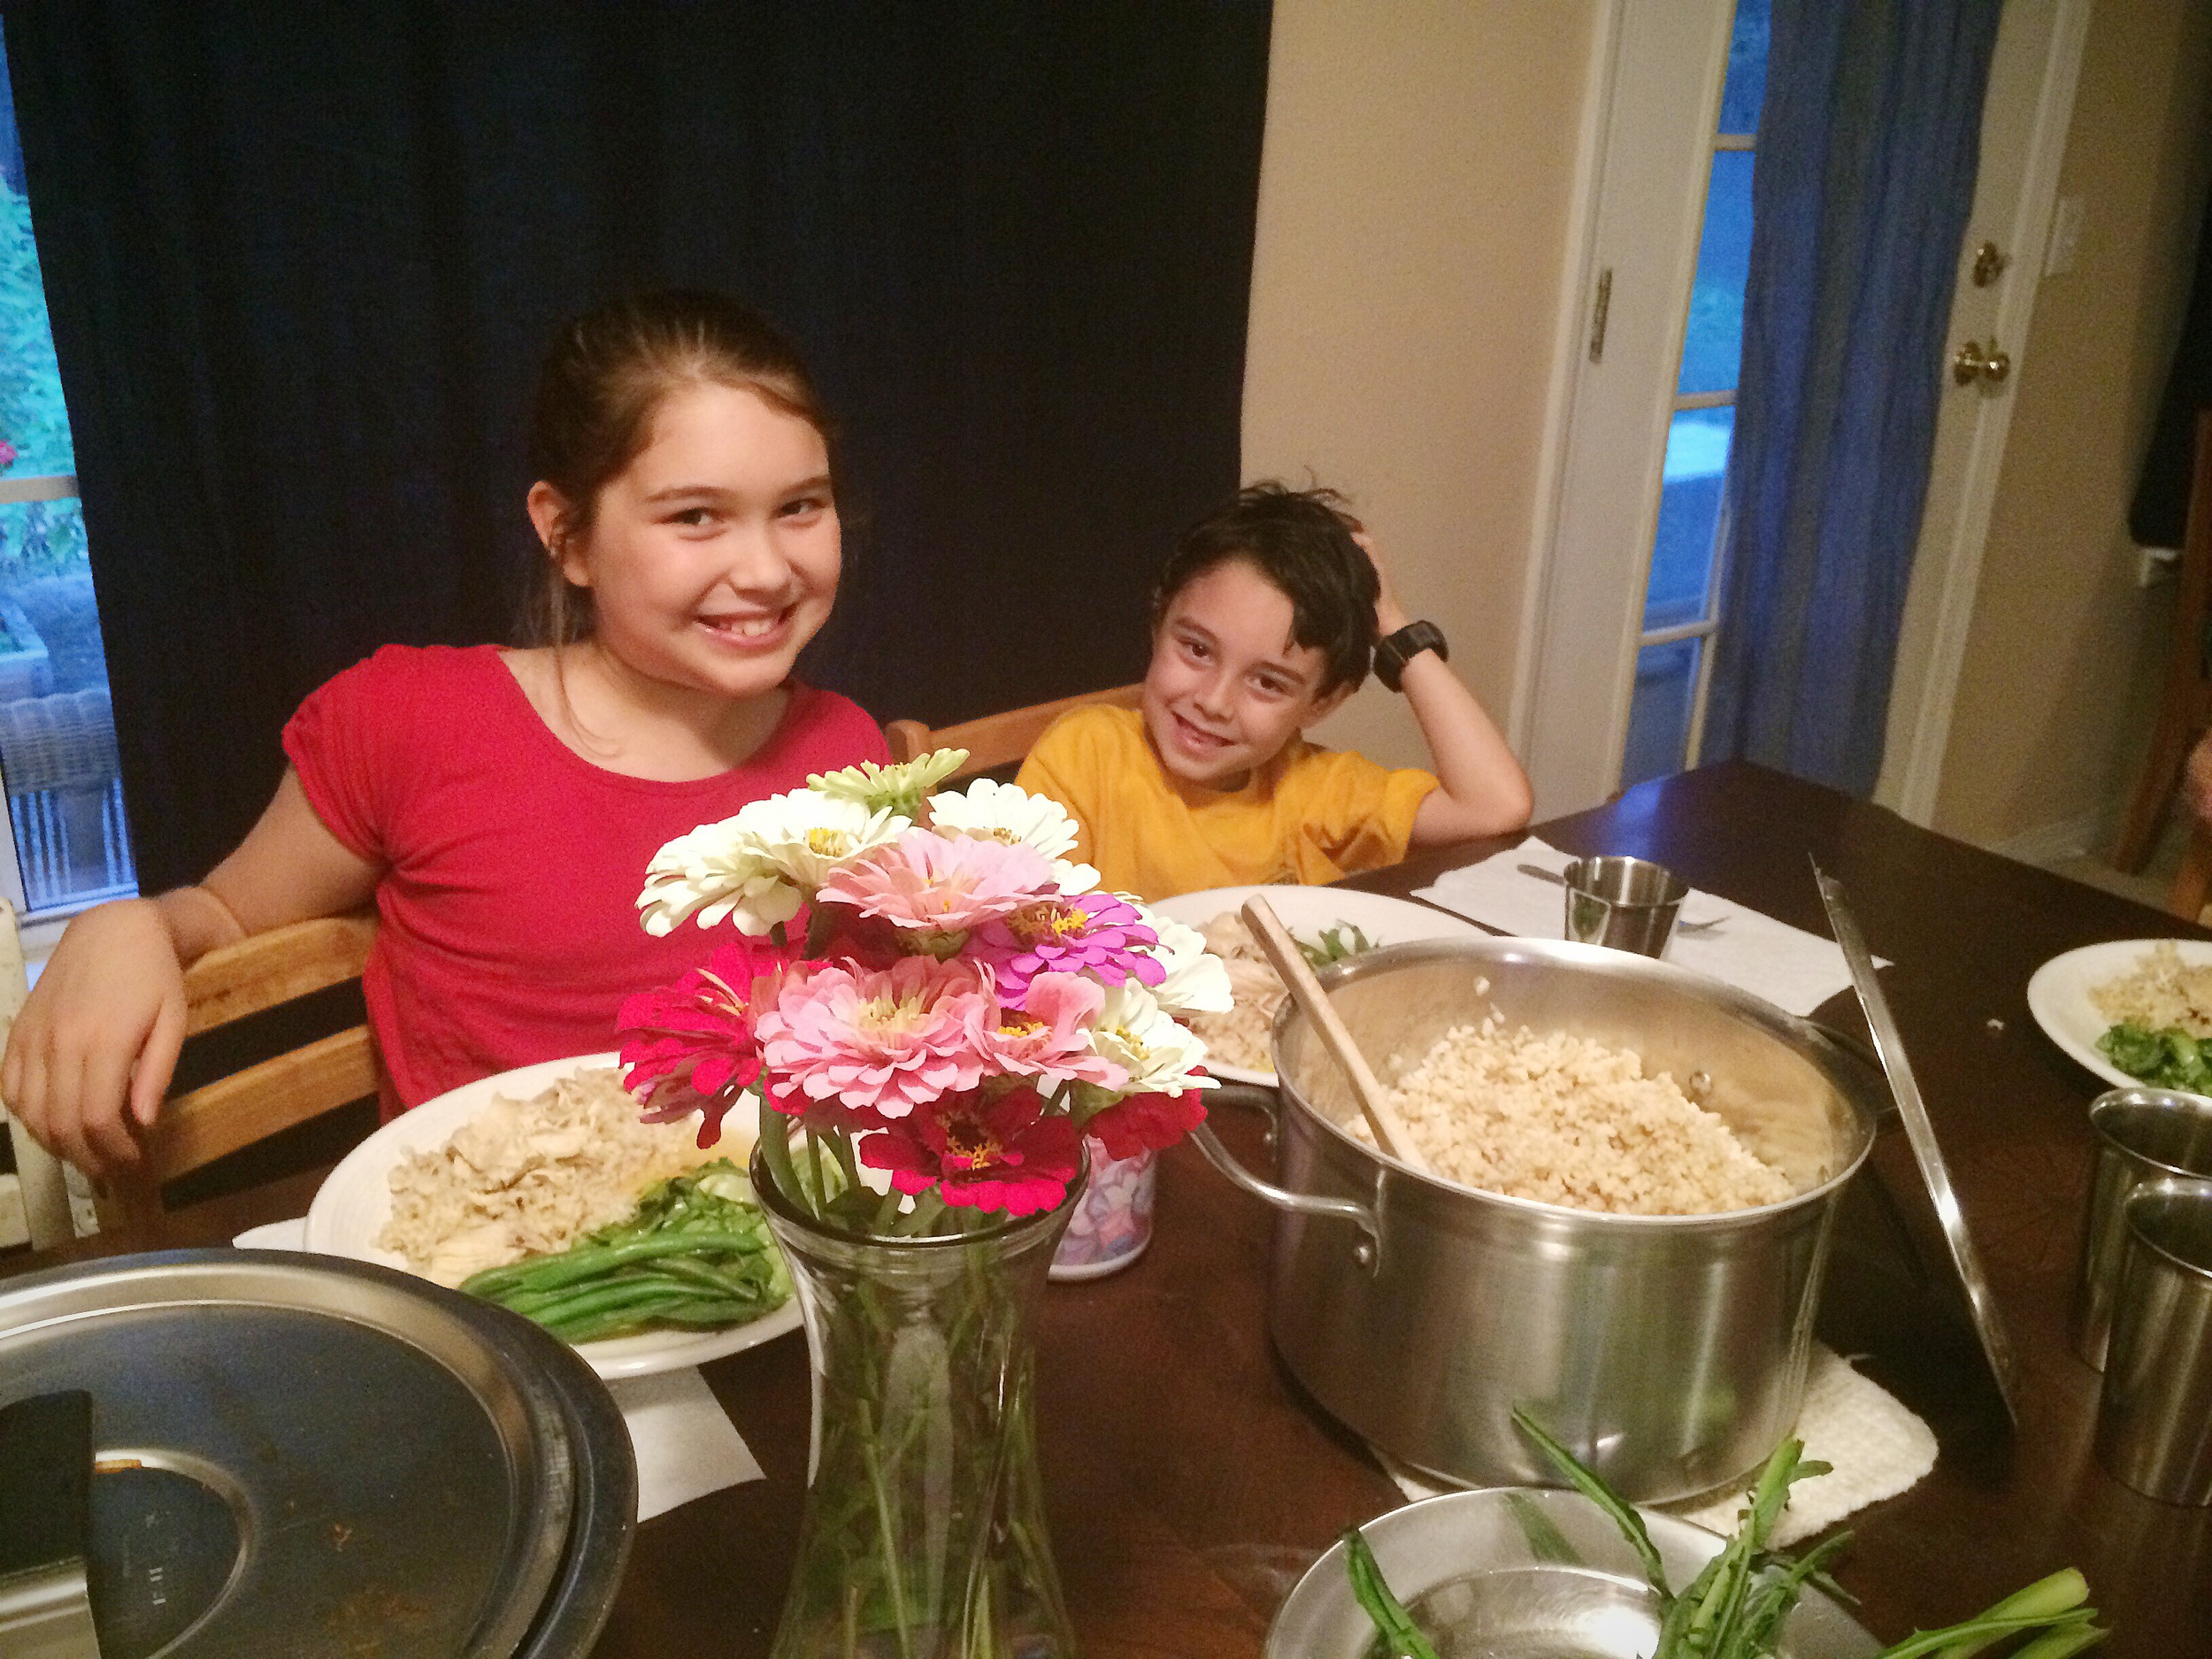 Heistheway and Abraham smile before we eat the organic dinner they and Pelaiah made with delicious real food from scratch